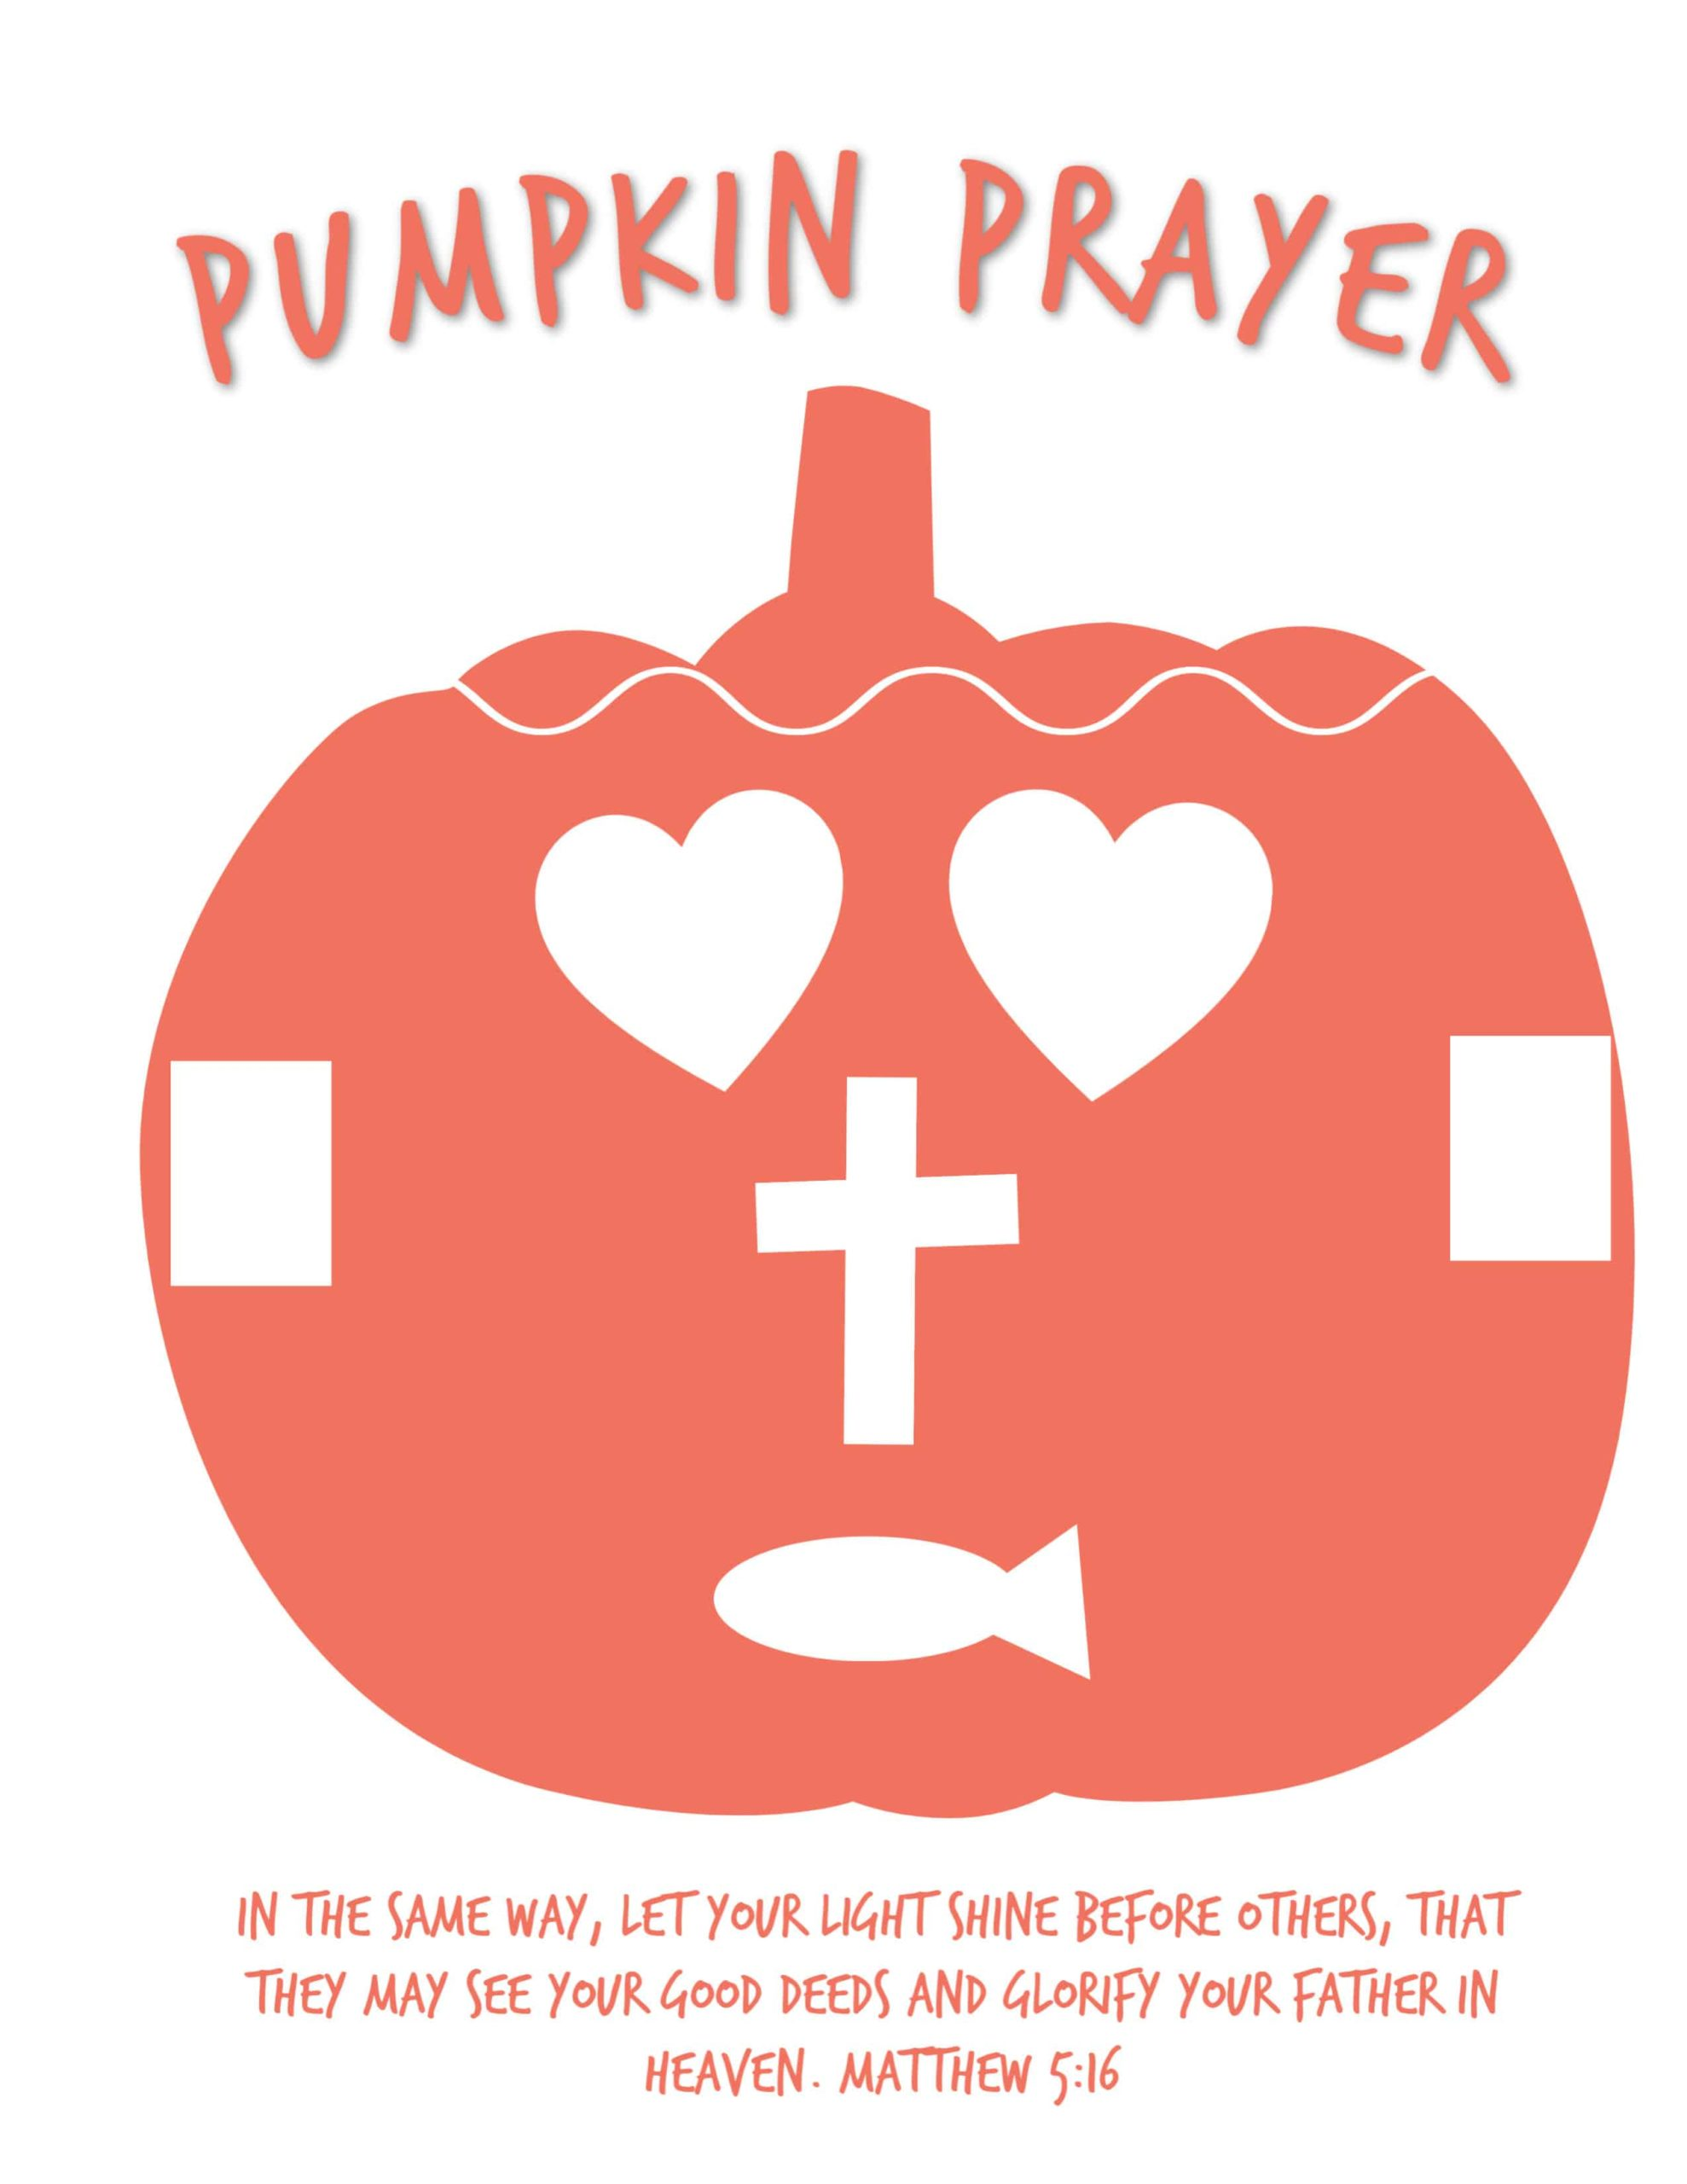 Pumpkin Prayer Poem Free Printbale Activity Object Lesson For Kids